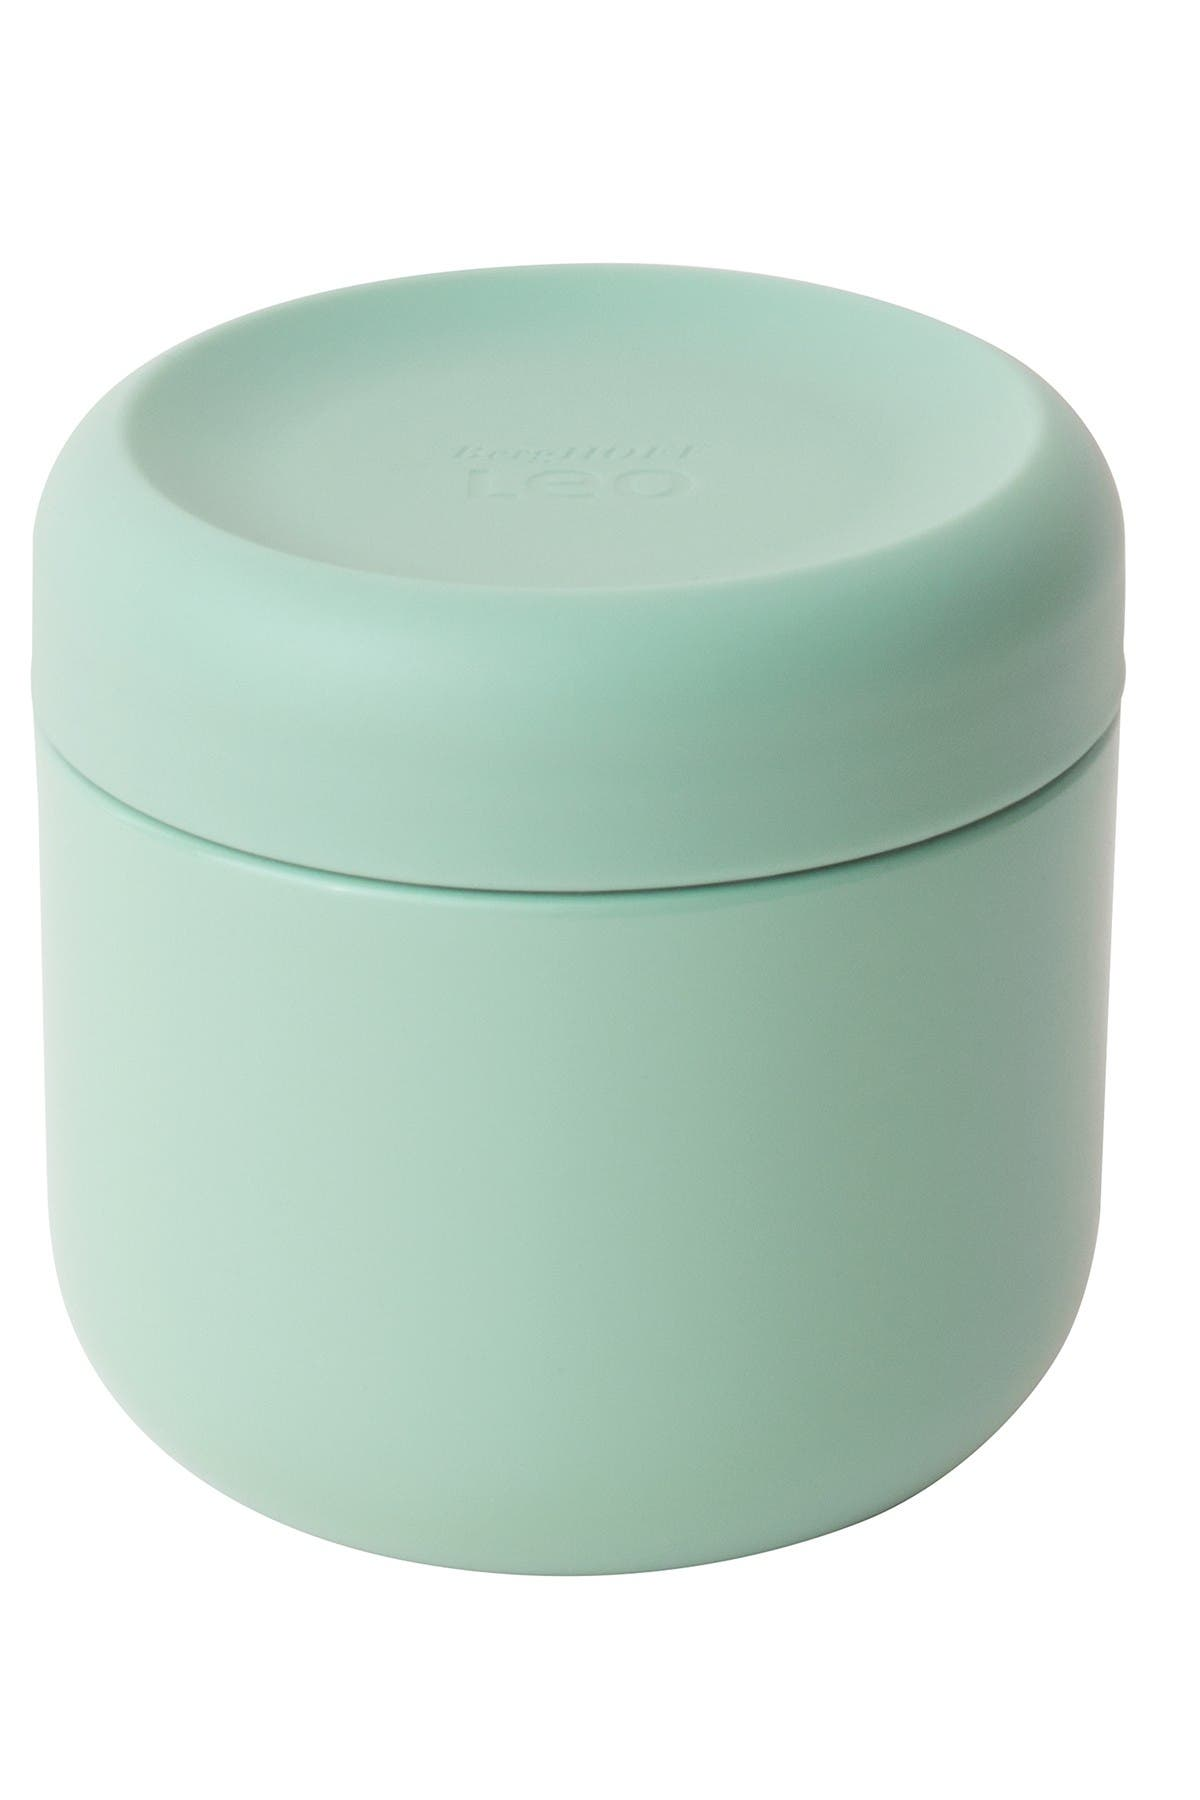 Image of BergHOFF Green 0.37 Quart Leo Food Container